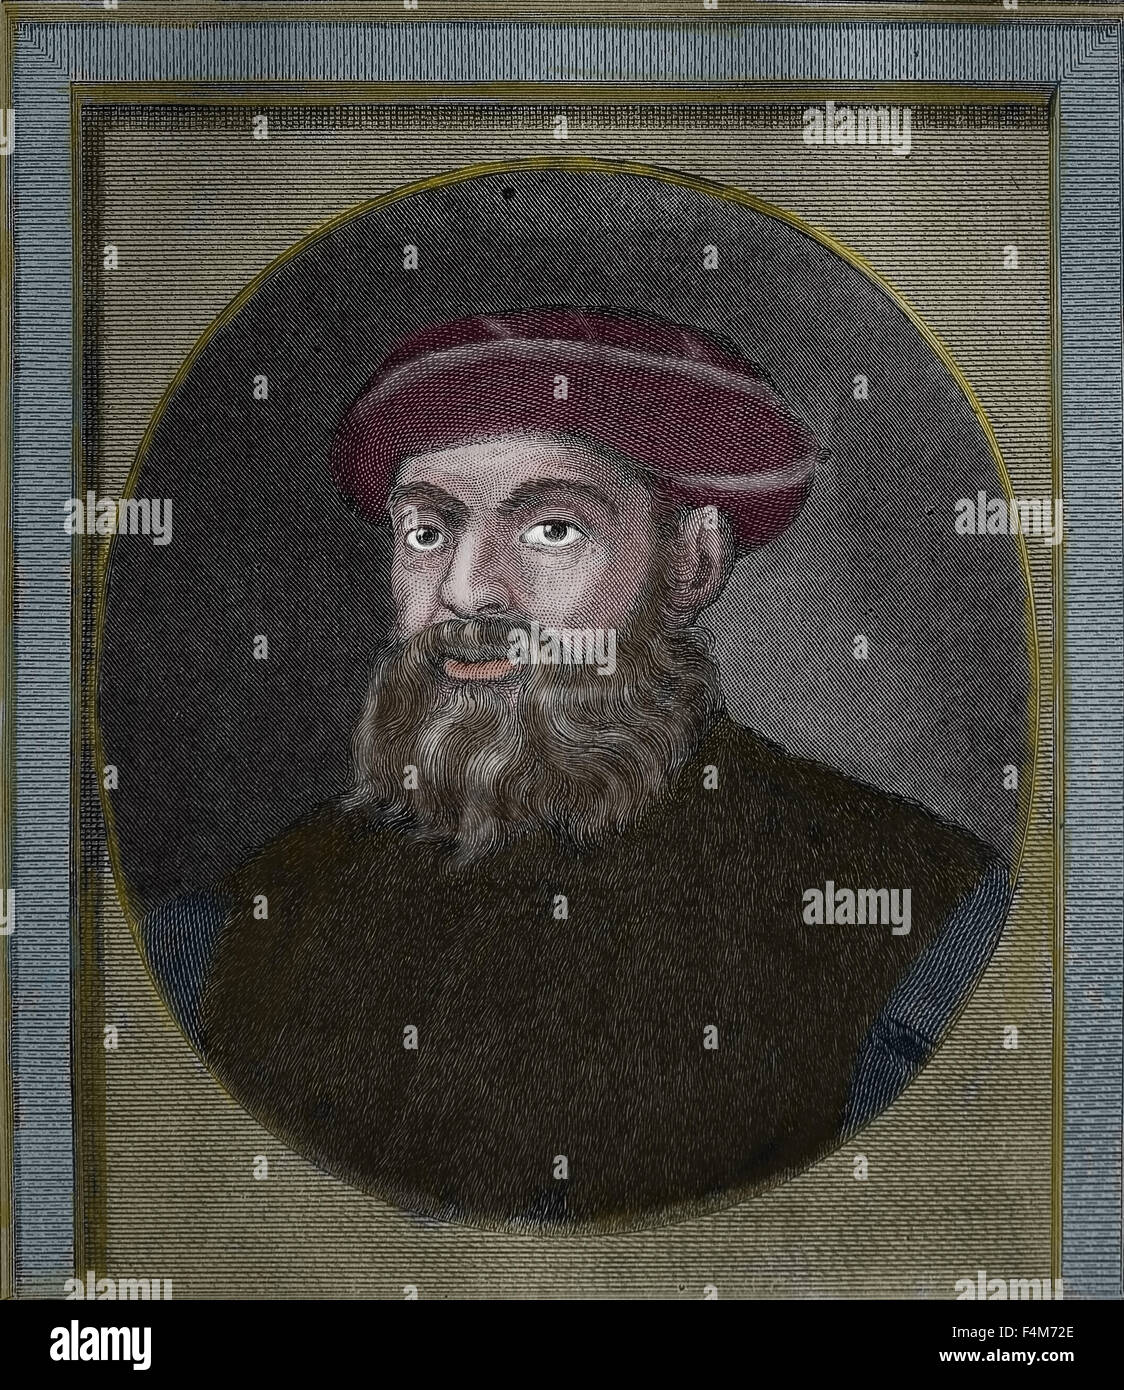 Ferdinand Magellan (1480-1521). Portuguese explorer. First Circumnavigation of the Earth. Portrait. Engraving by - Stock Image